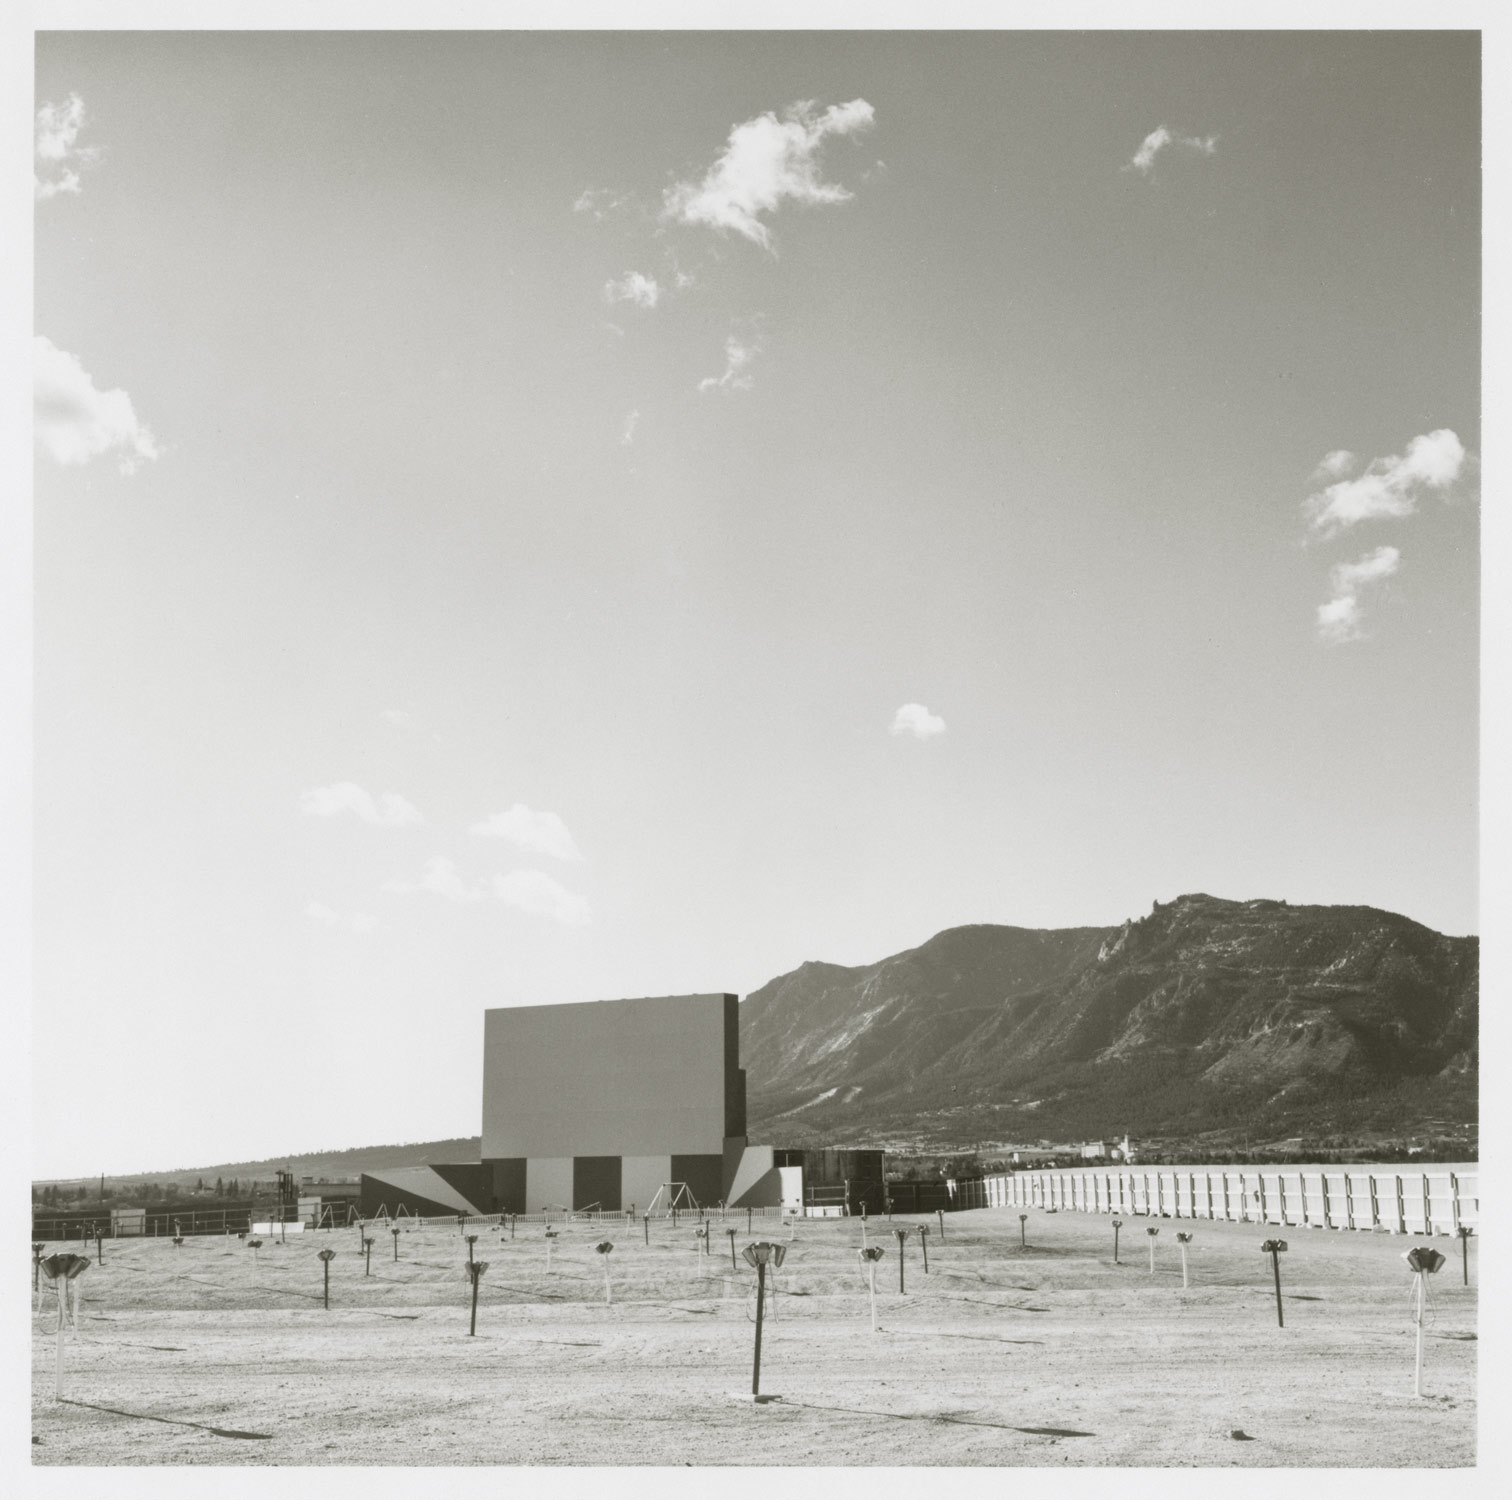 Robert Adams,  Outdoor Theatre Colorado Springs, CO  (1968)